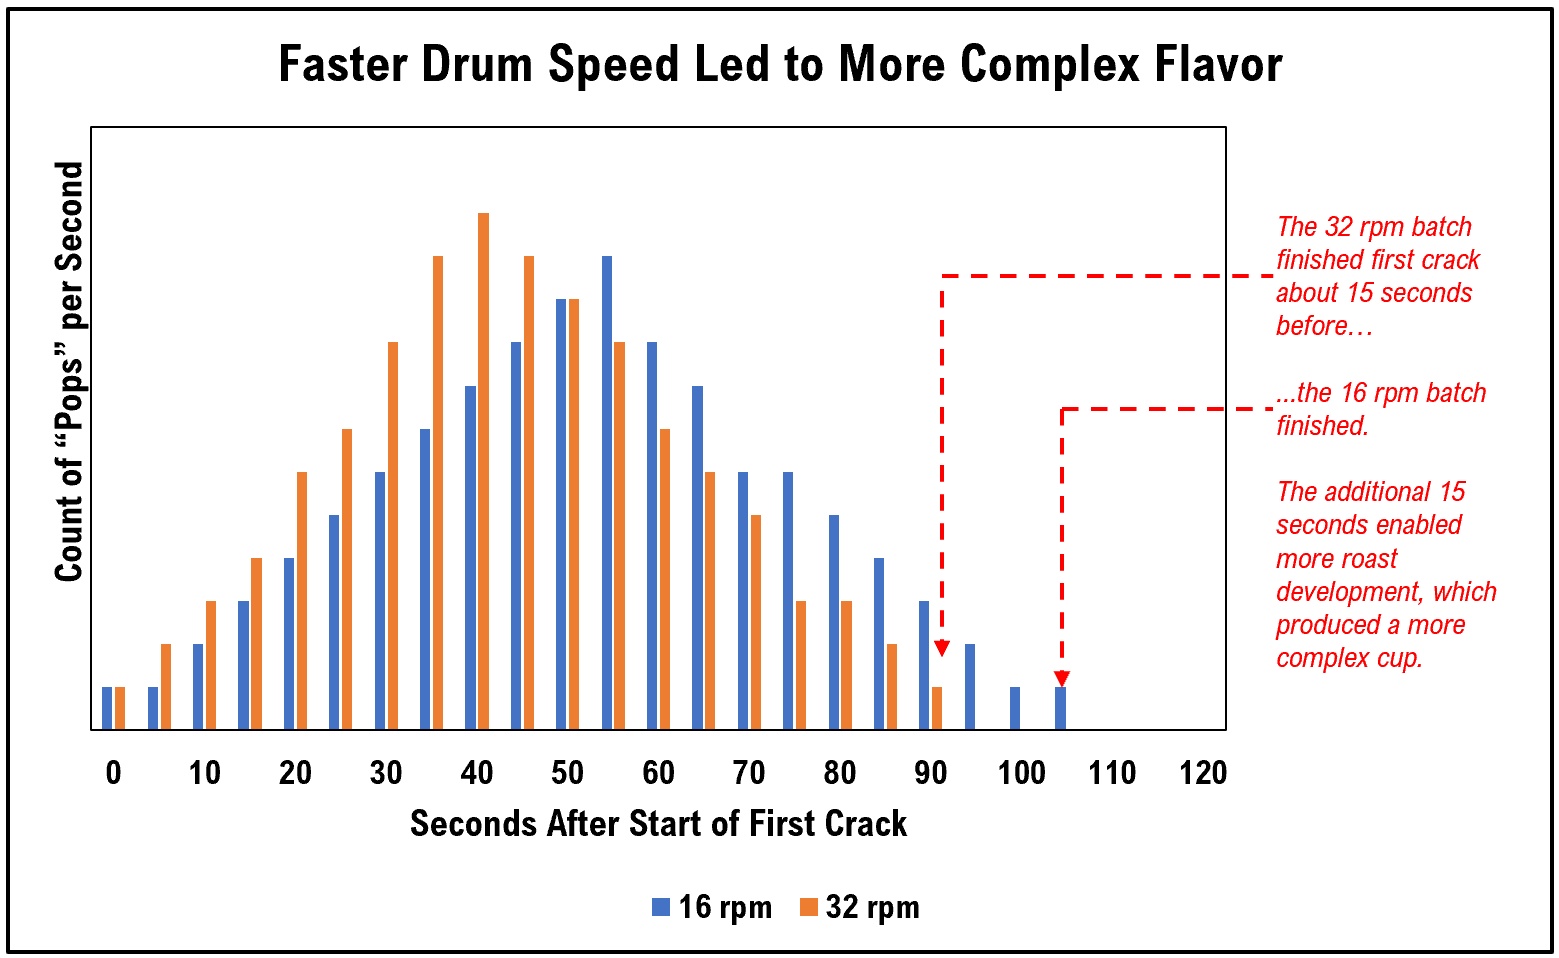 faster drum speed led to more complex cup